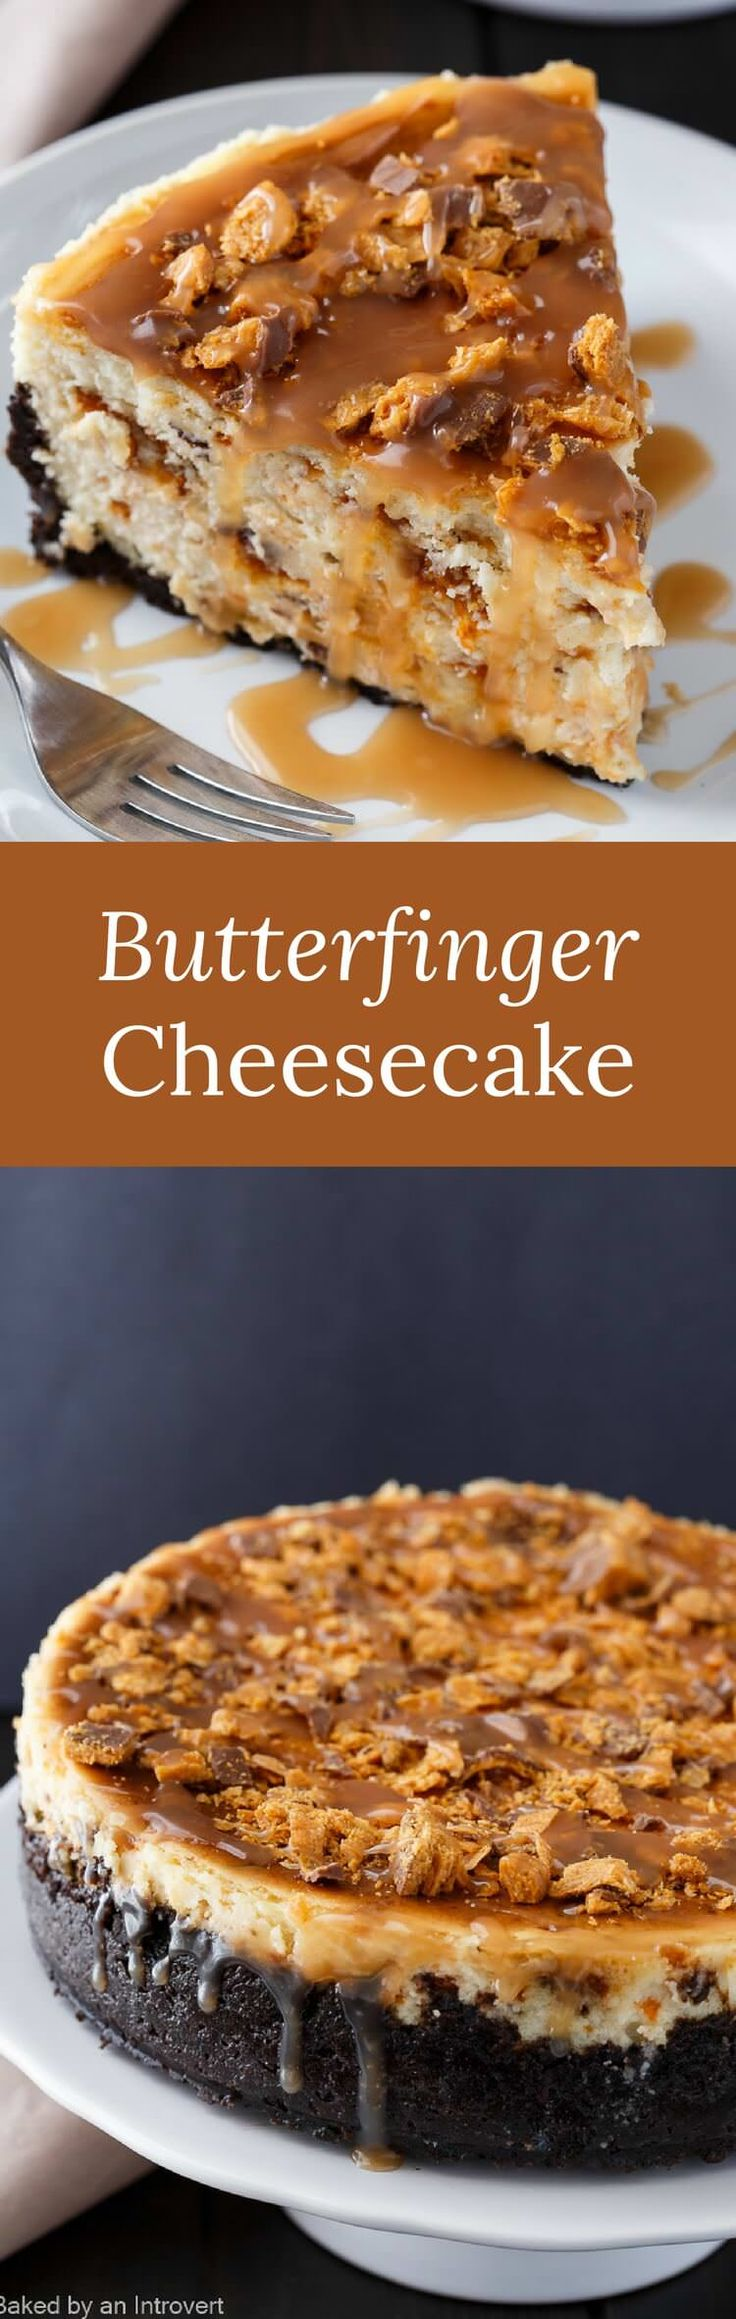 Butterfinger candy bars and cheesecake is an incredible combination. It's truly a match made in cheesecake heaven! There is so much to love…